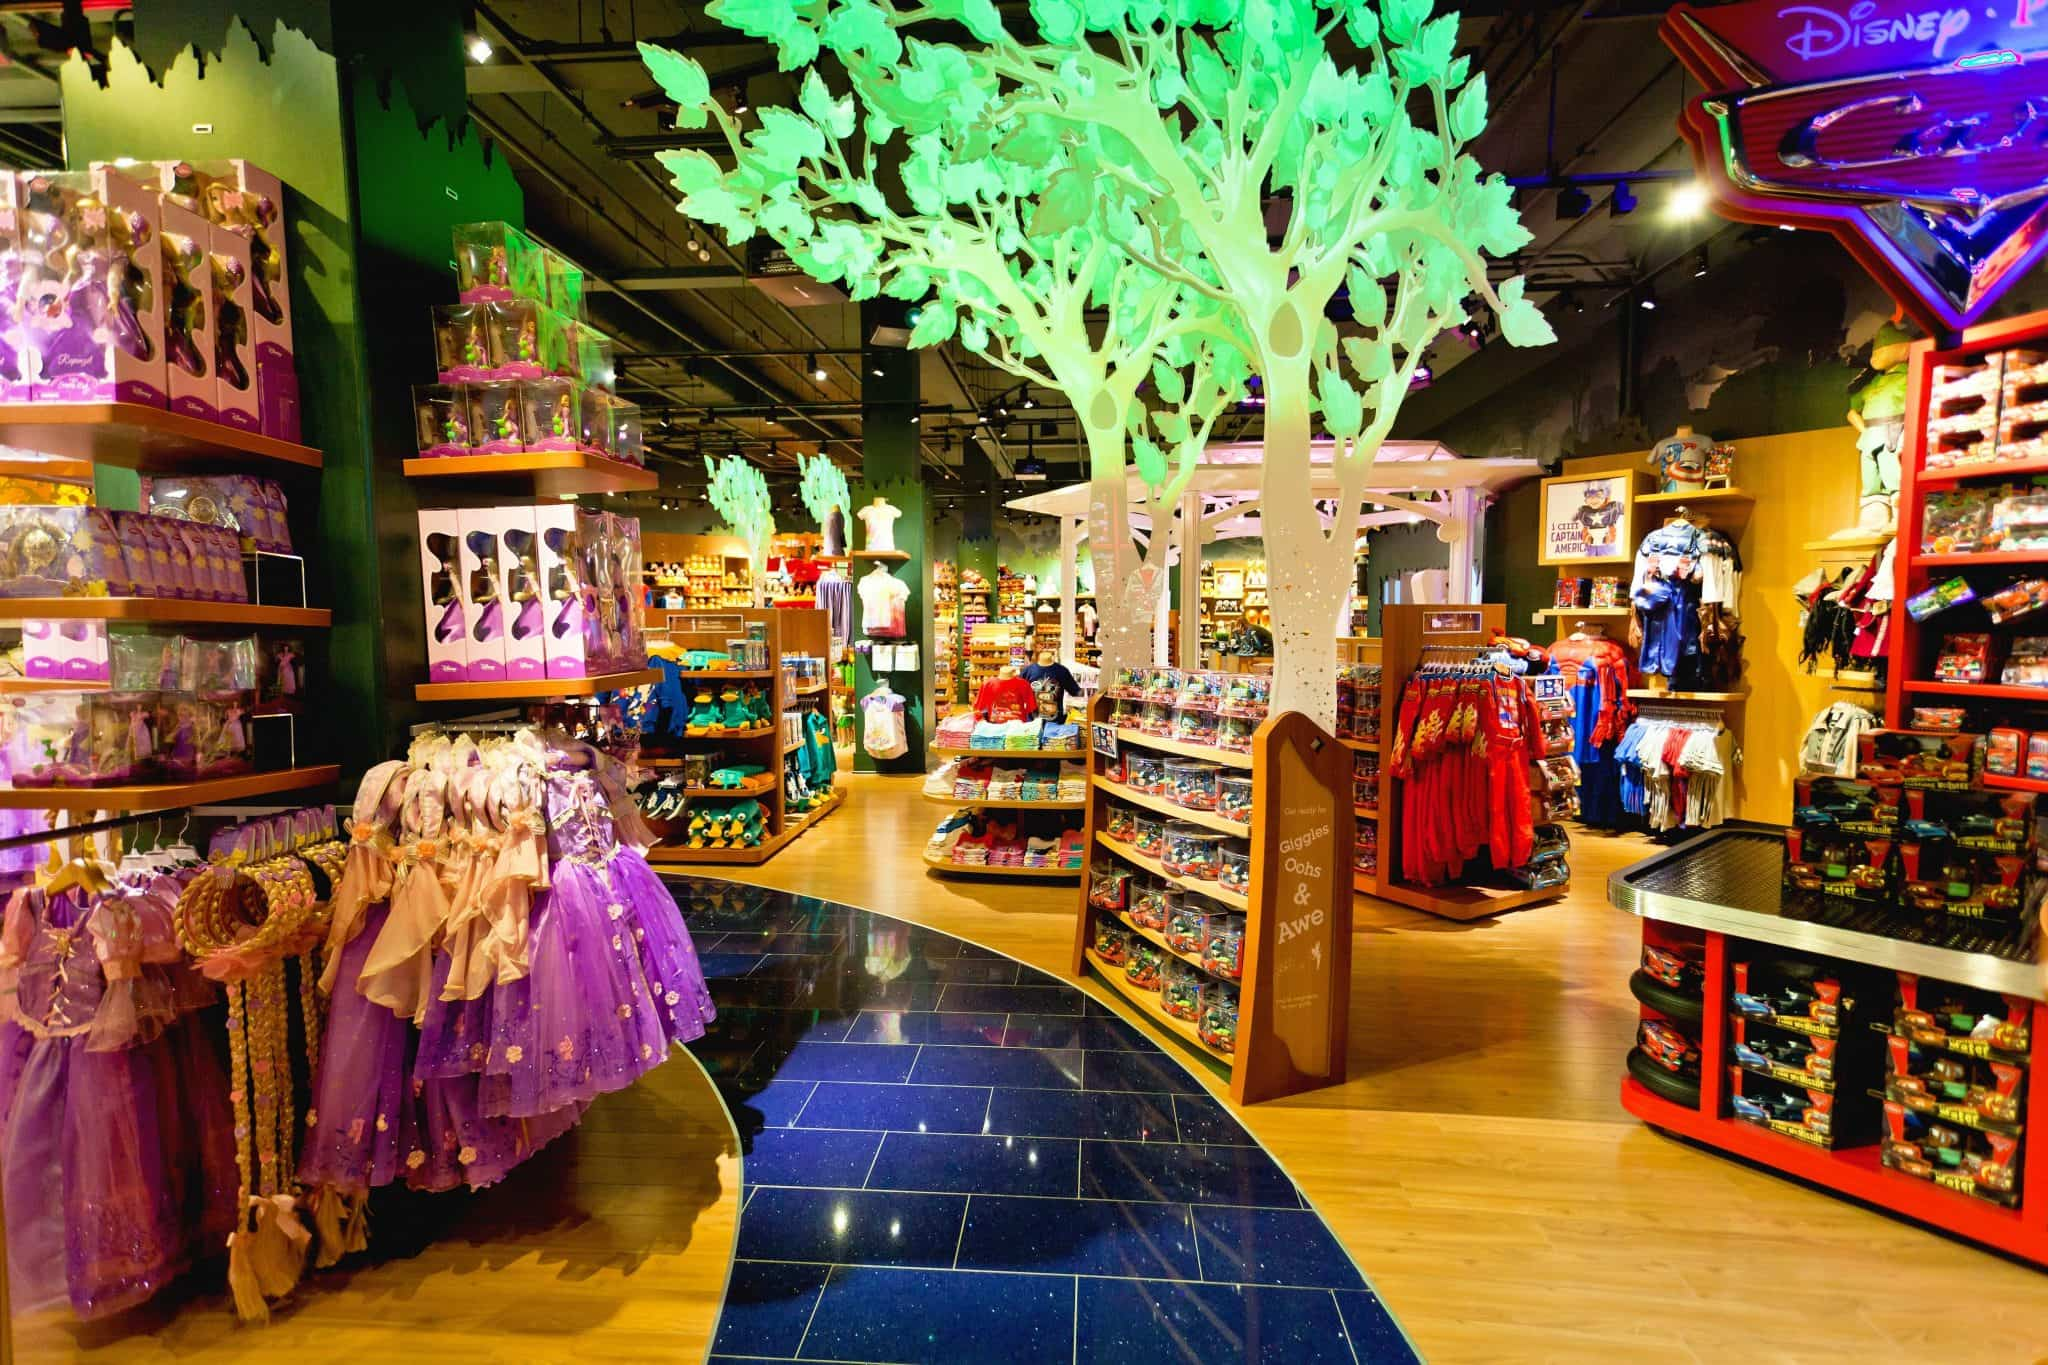 Disney's Character Warehouse, located at Orlando International Premium Outlets®: Disney retail chain featuring official character toys, clothes, collectibles & more.